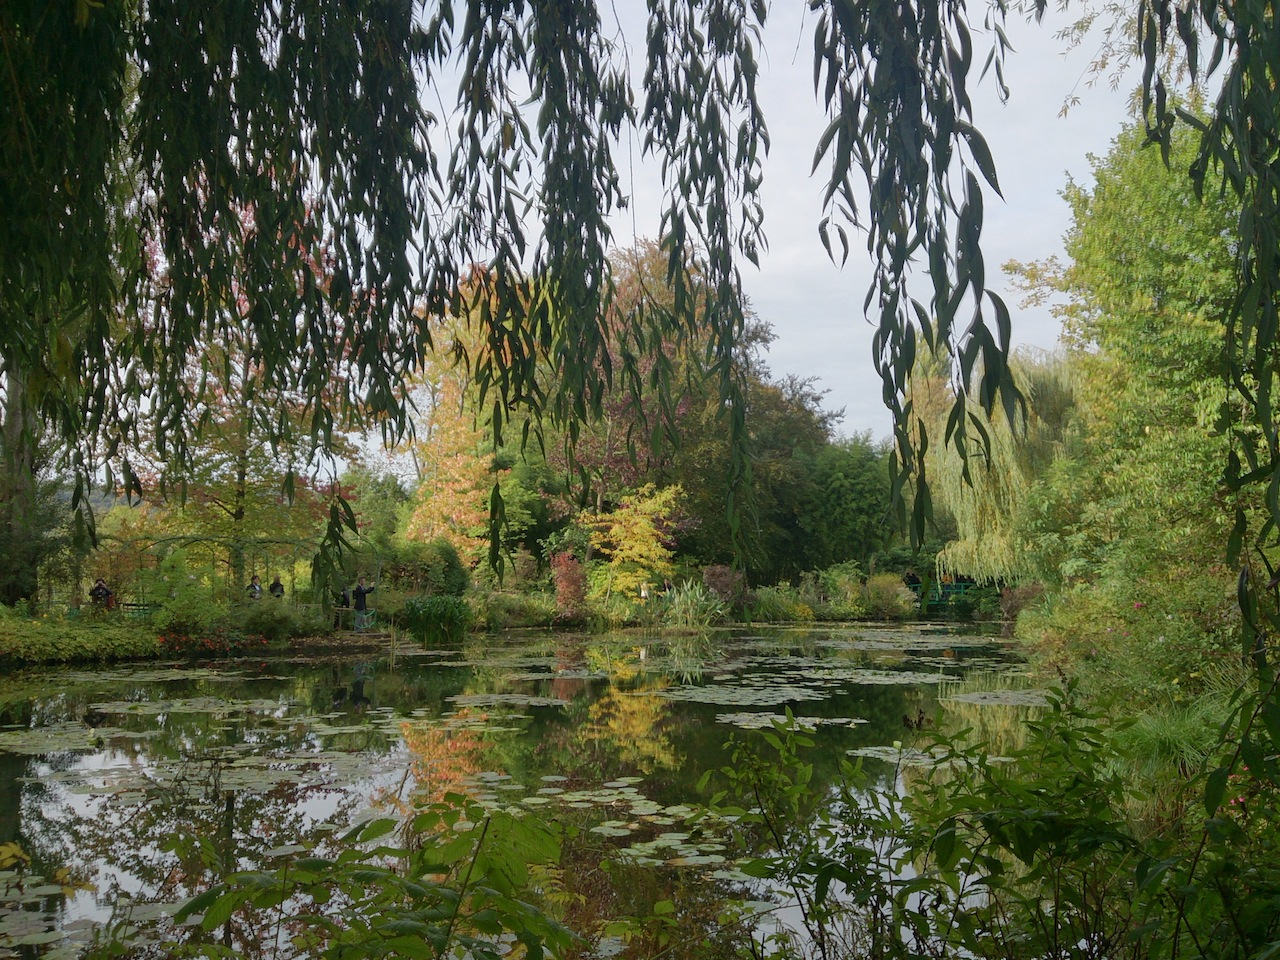 Giverny: Lasting Impressions